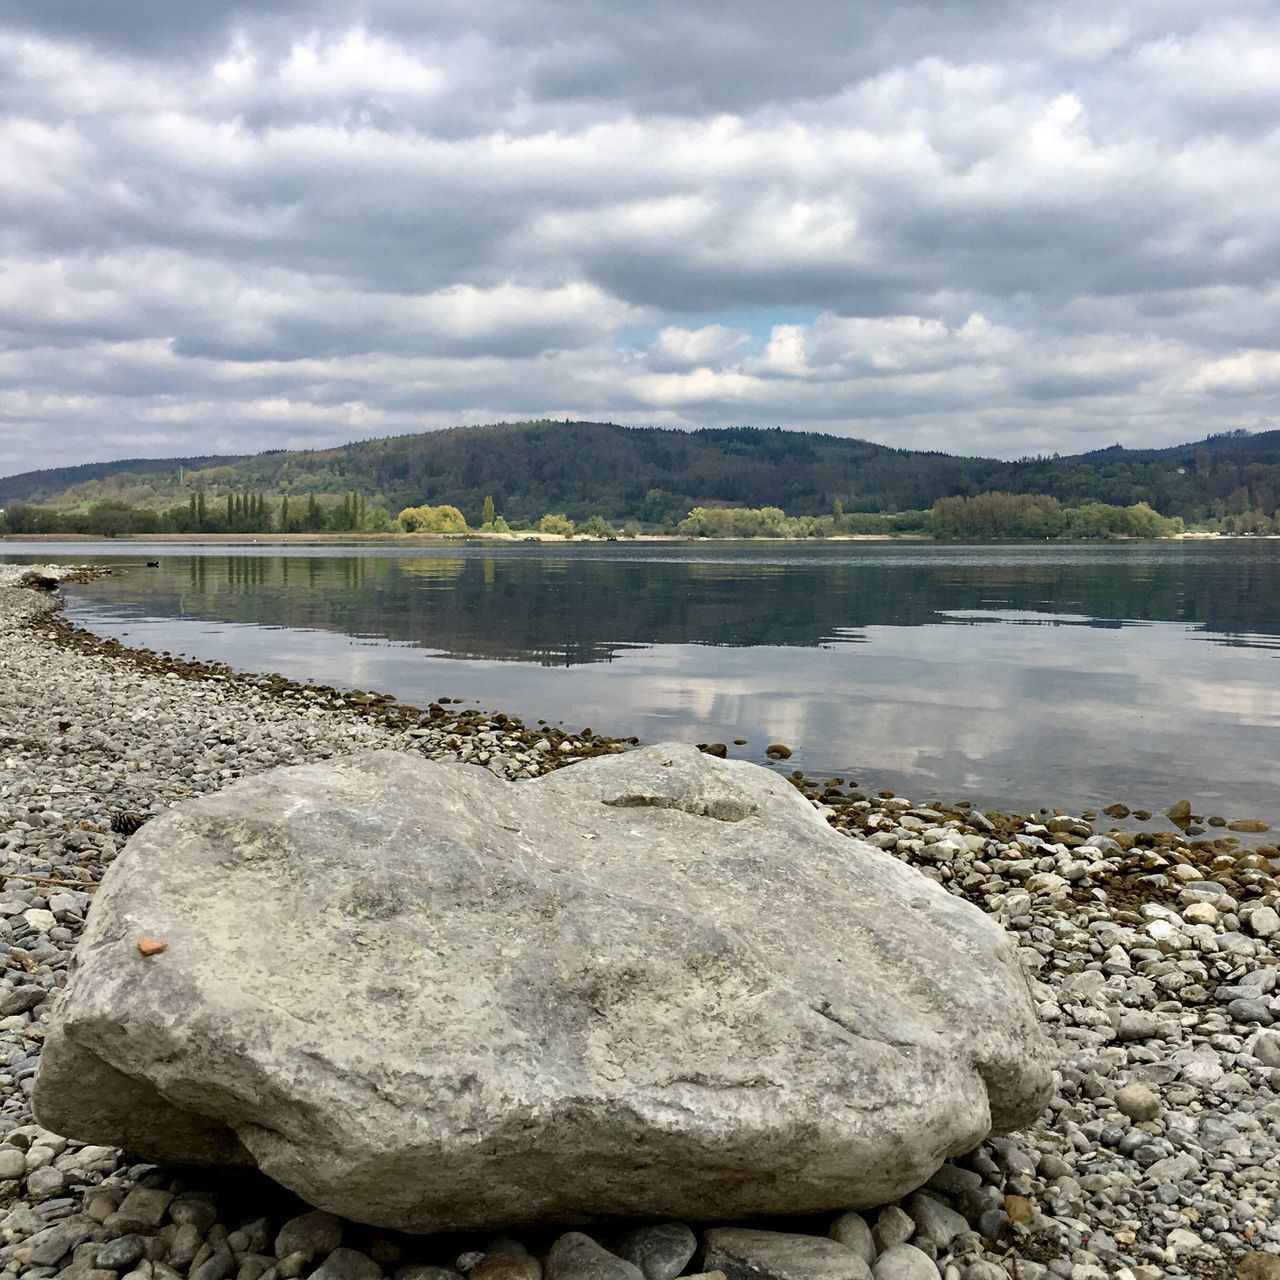 Sky No People Scenics Beauty In Nature Day Rock - Object Lake Tranquil Scene Outdoors Landscape Water